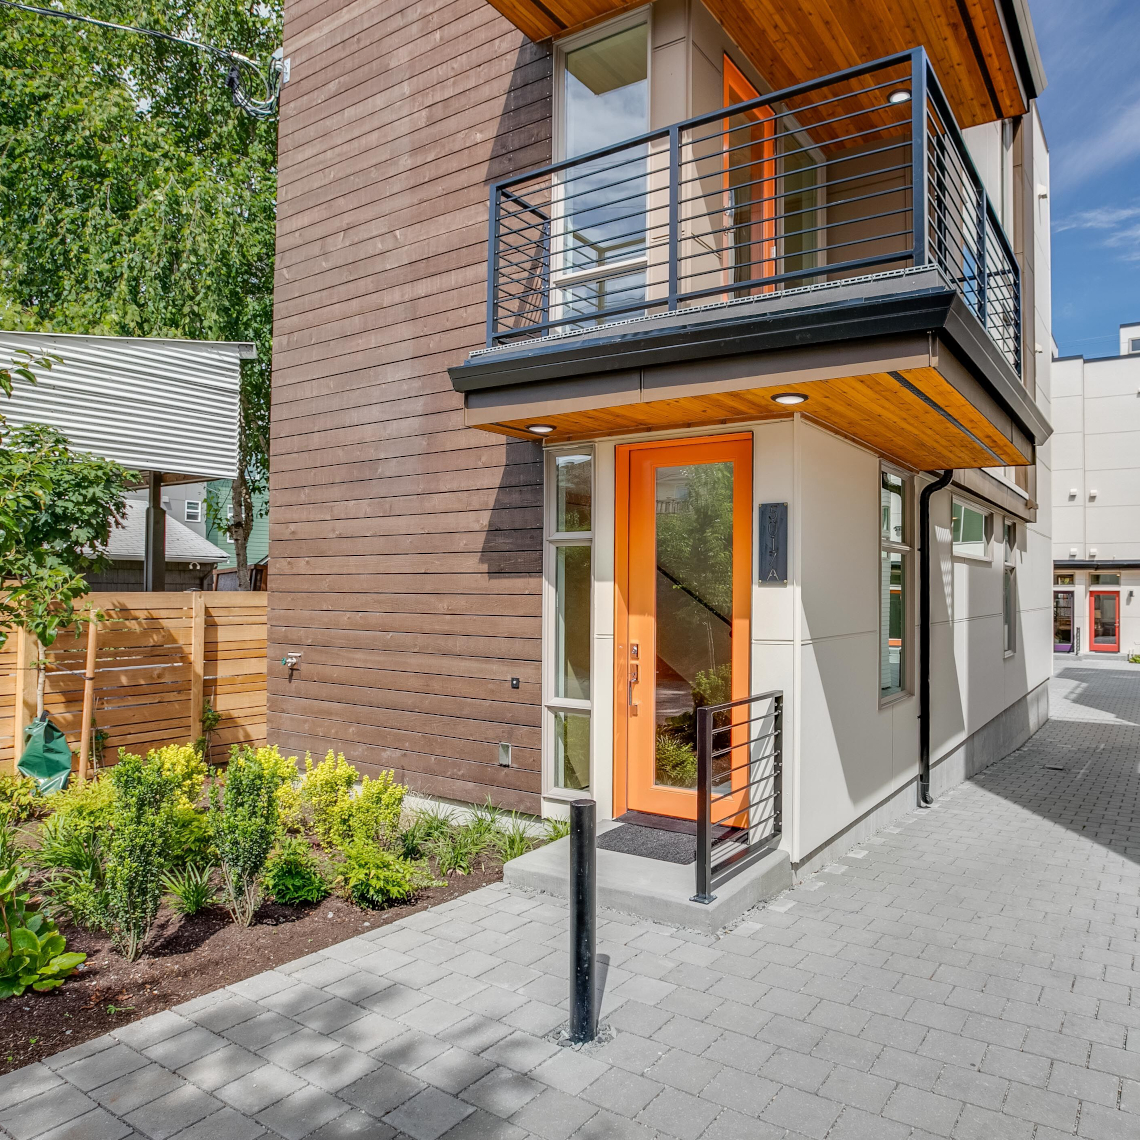 Haberzetle Homes Playful All-Electric 4-Star Townhomes exterior entry and garden